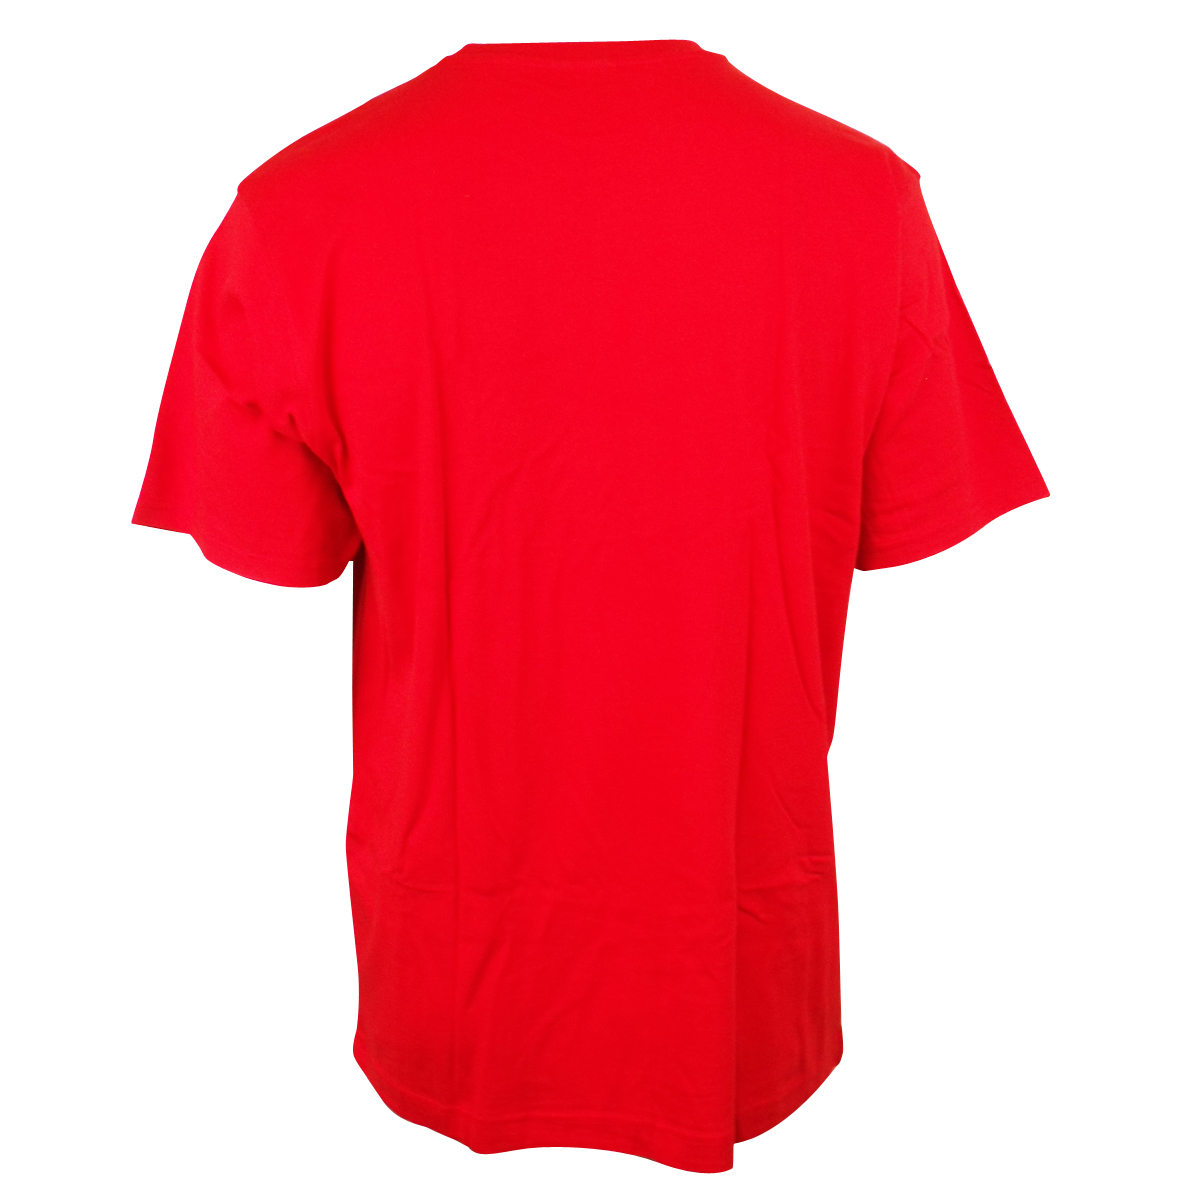 Mens nike retro red cotton tee t shirt running training top l for Old school nike shirts